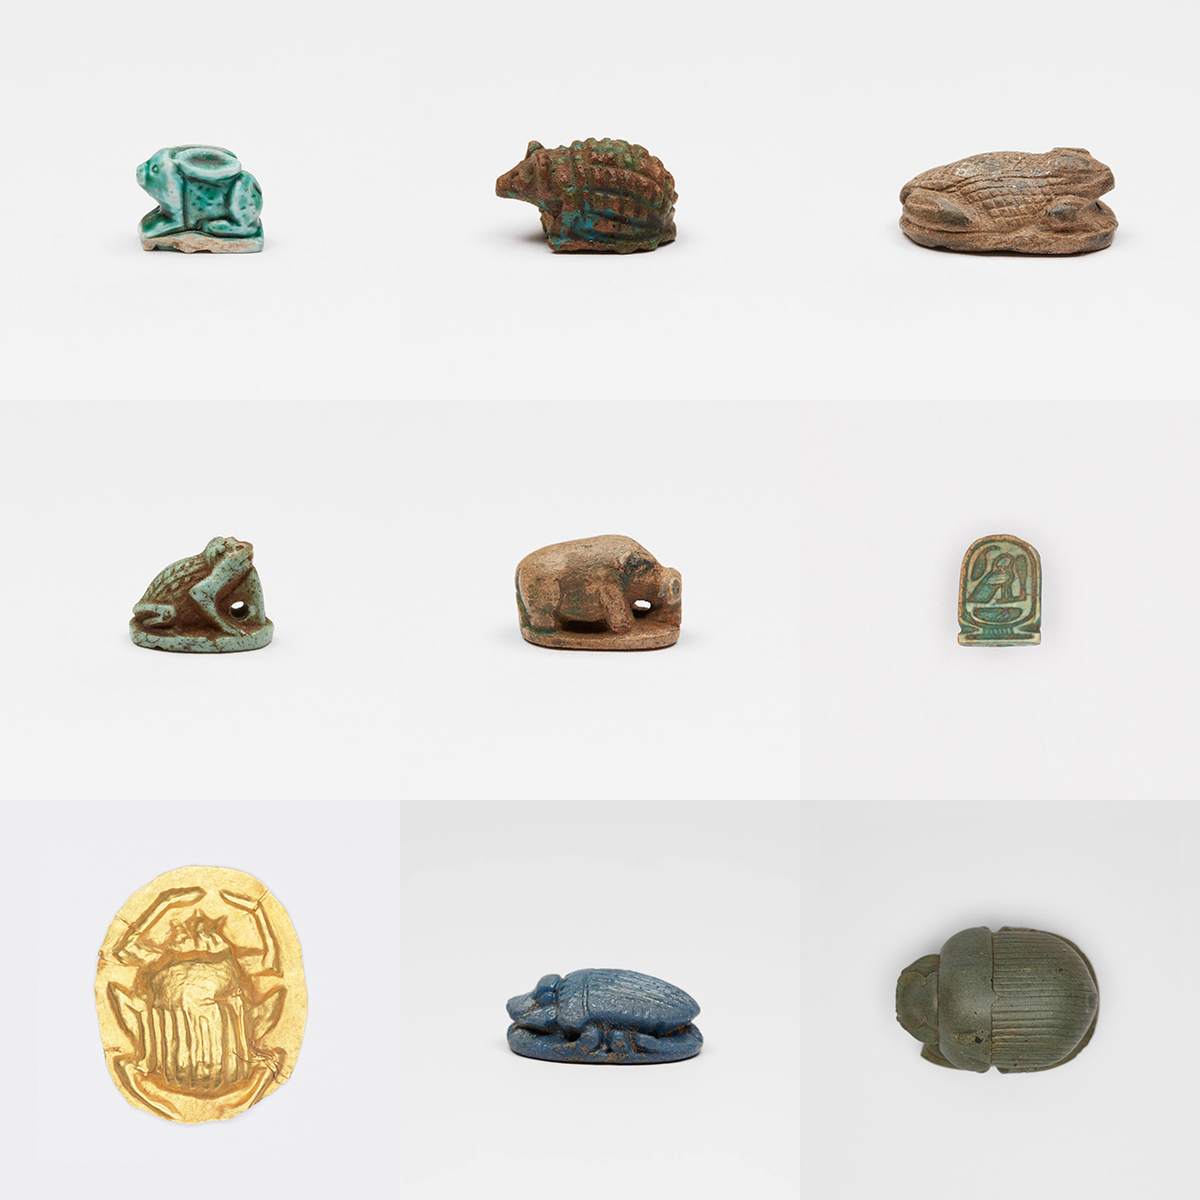 Nine color photographs of very small carved sculptural scaraboids arranged in a 3 by 3 grid.